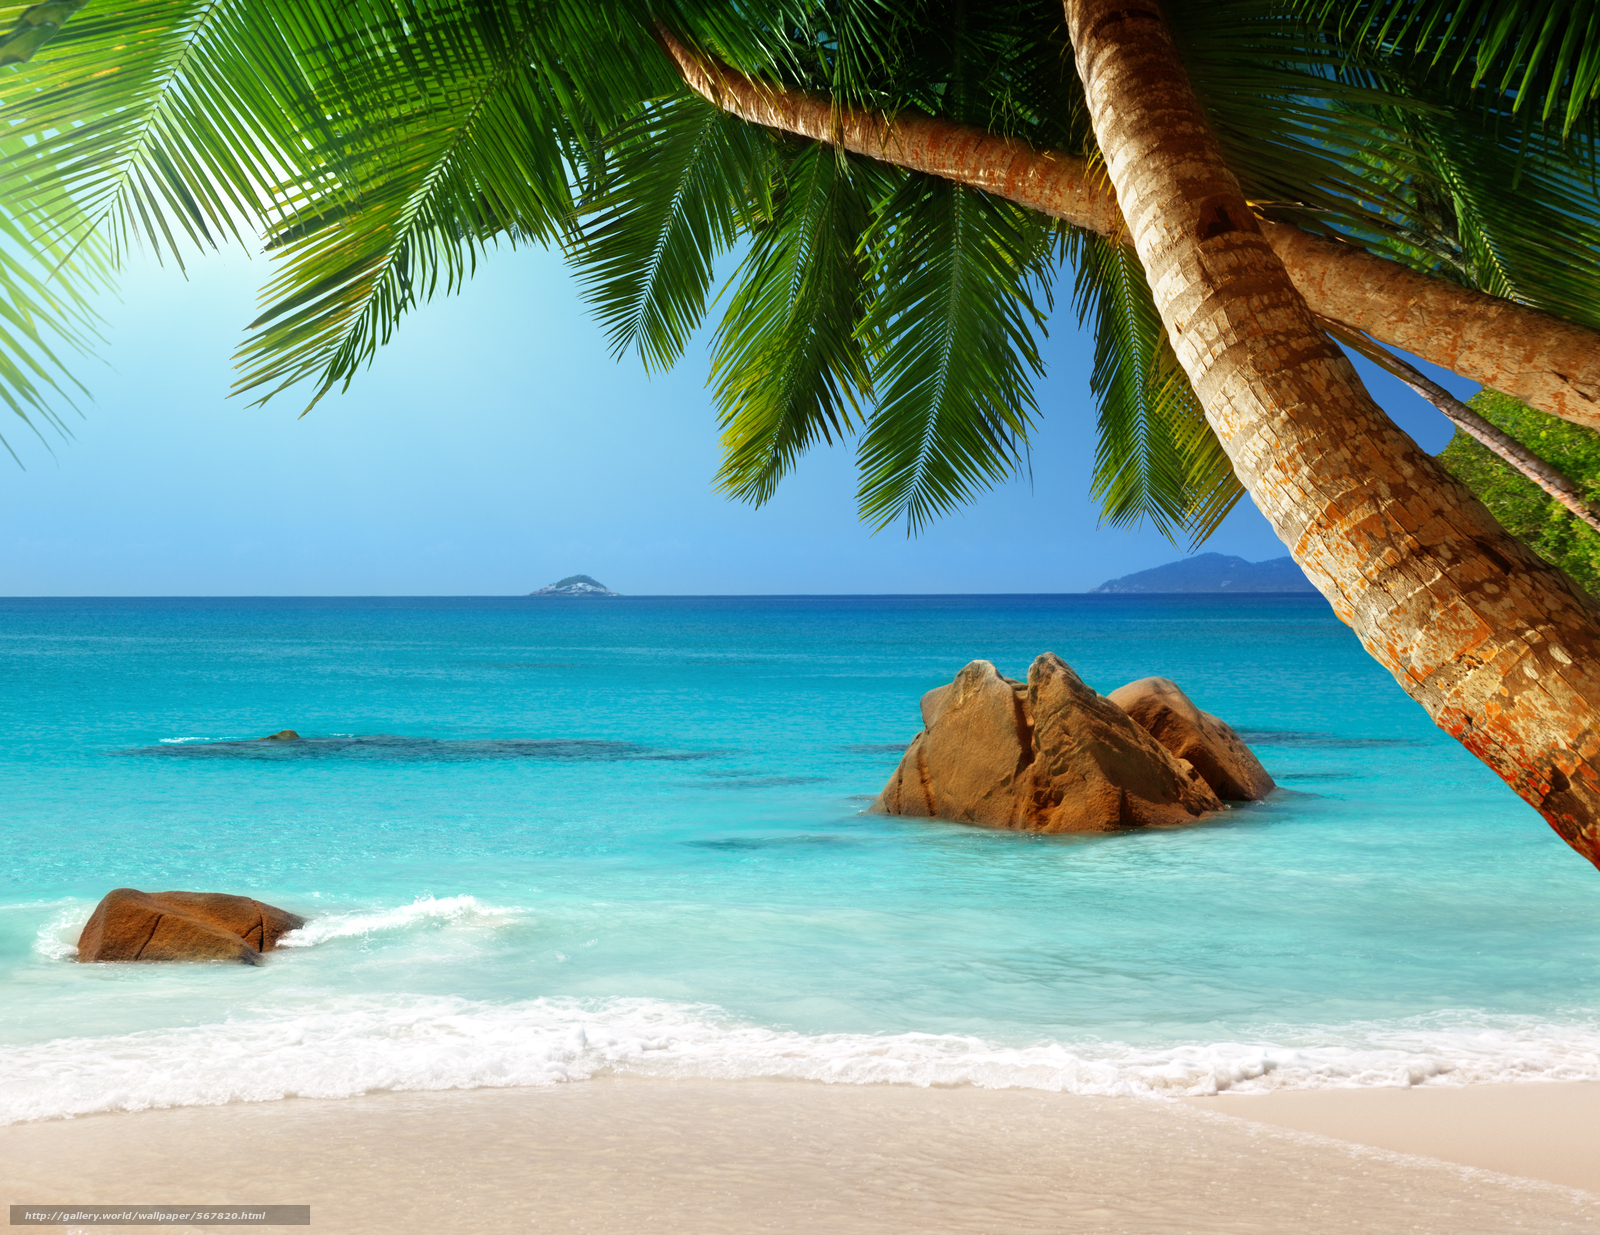 Tlcharger fond d 39 ecran tropical paradise plage paumes for Beach mural wall